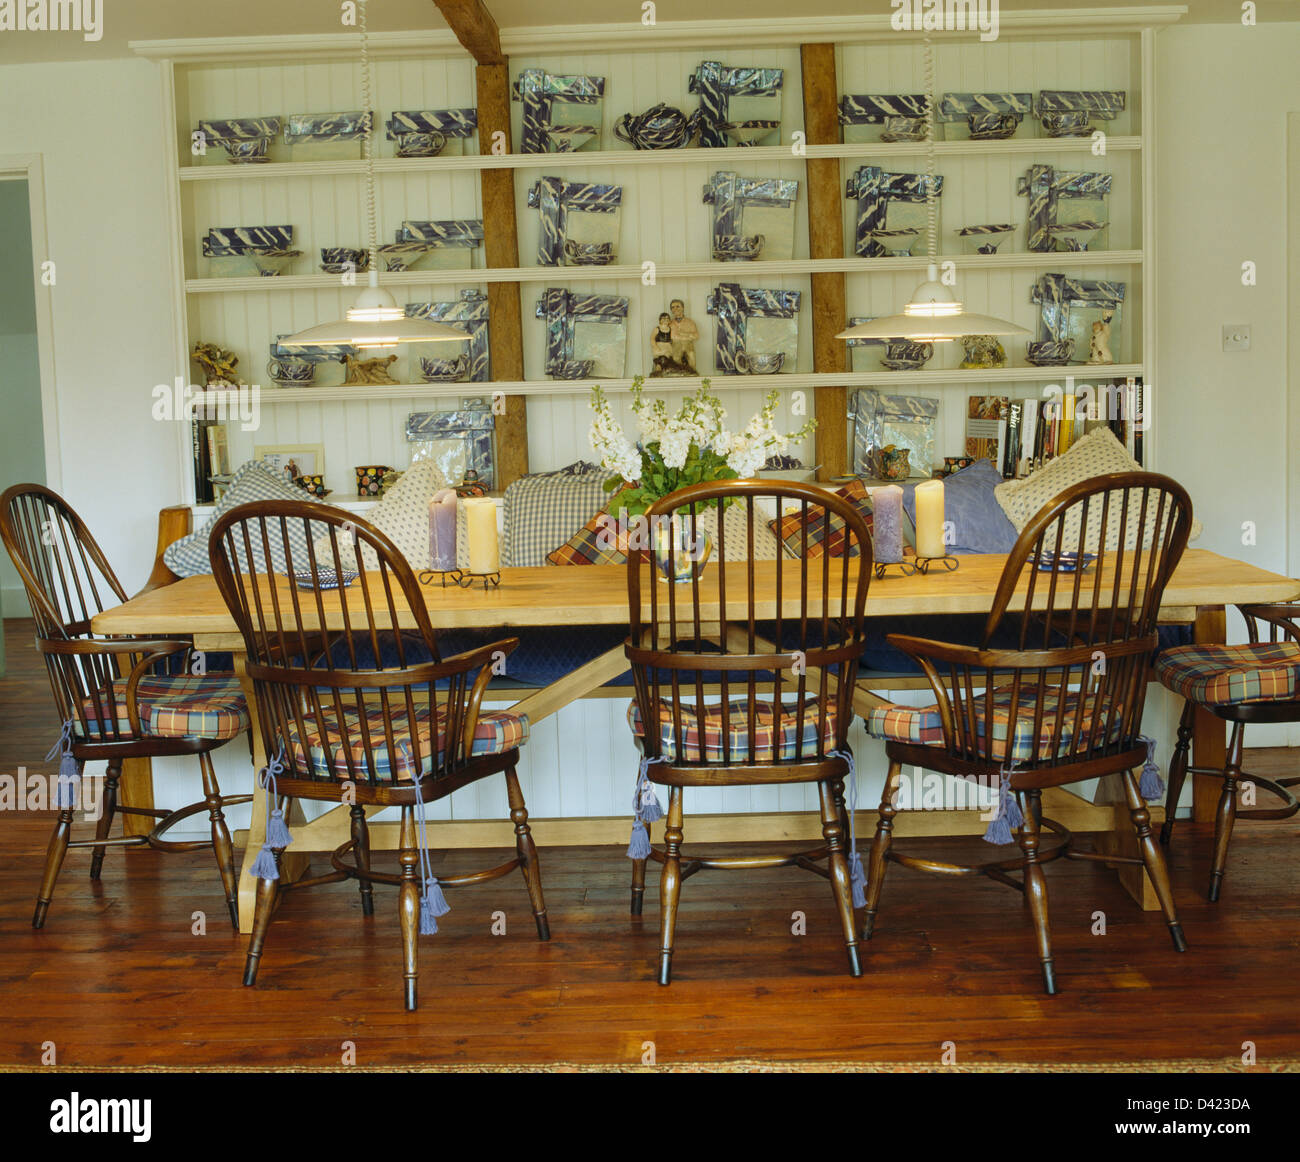 Antique Windsor Chairs And Simple Pine Table In Country Dining Room With  Blue+white China Frames On White Shelves